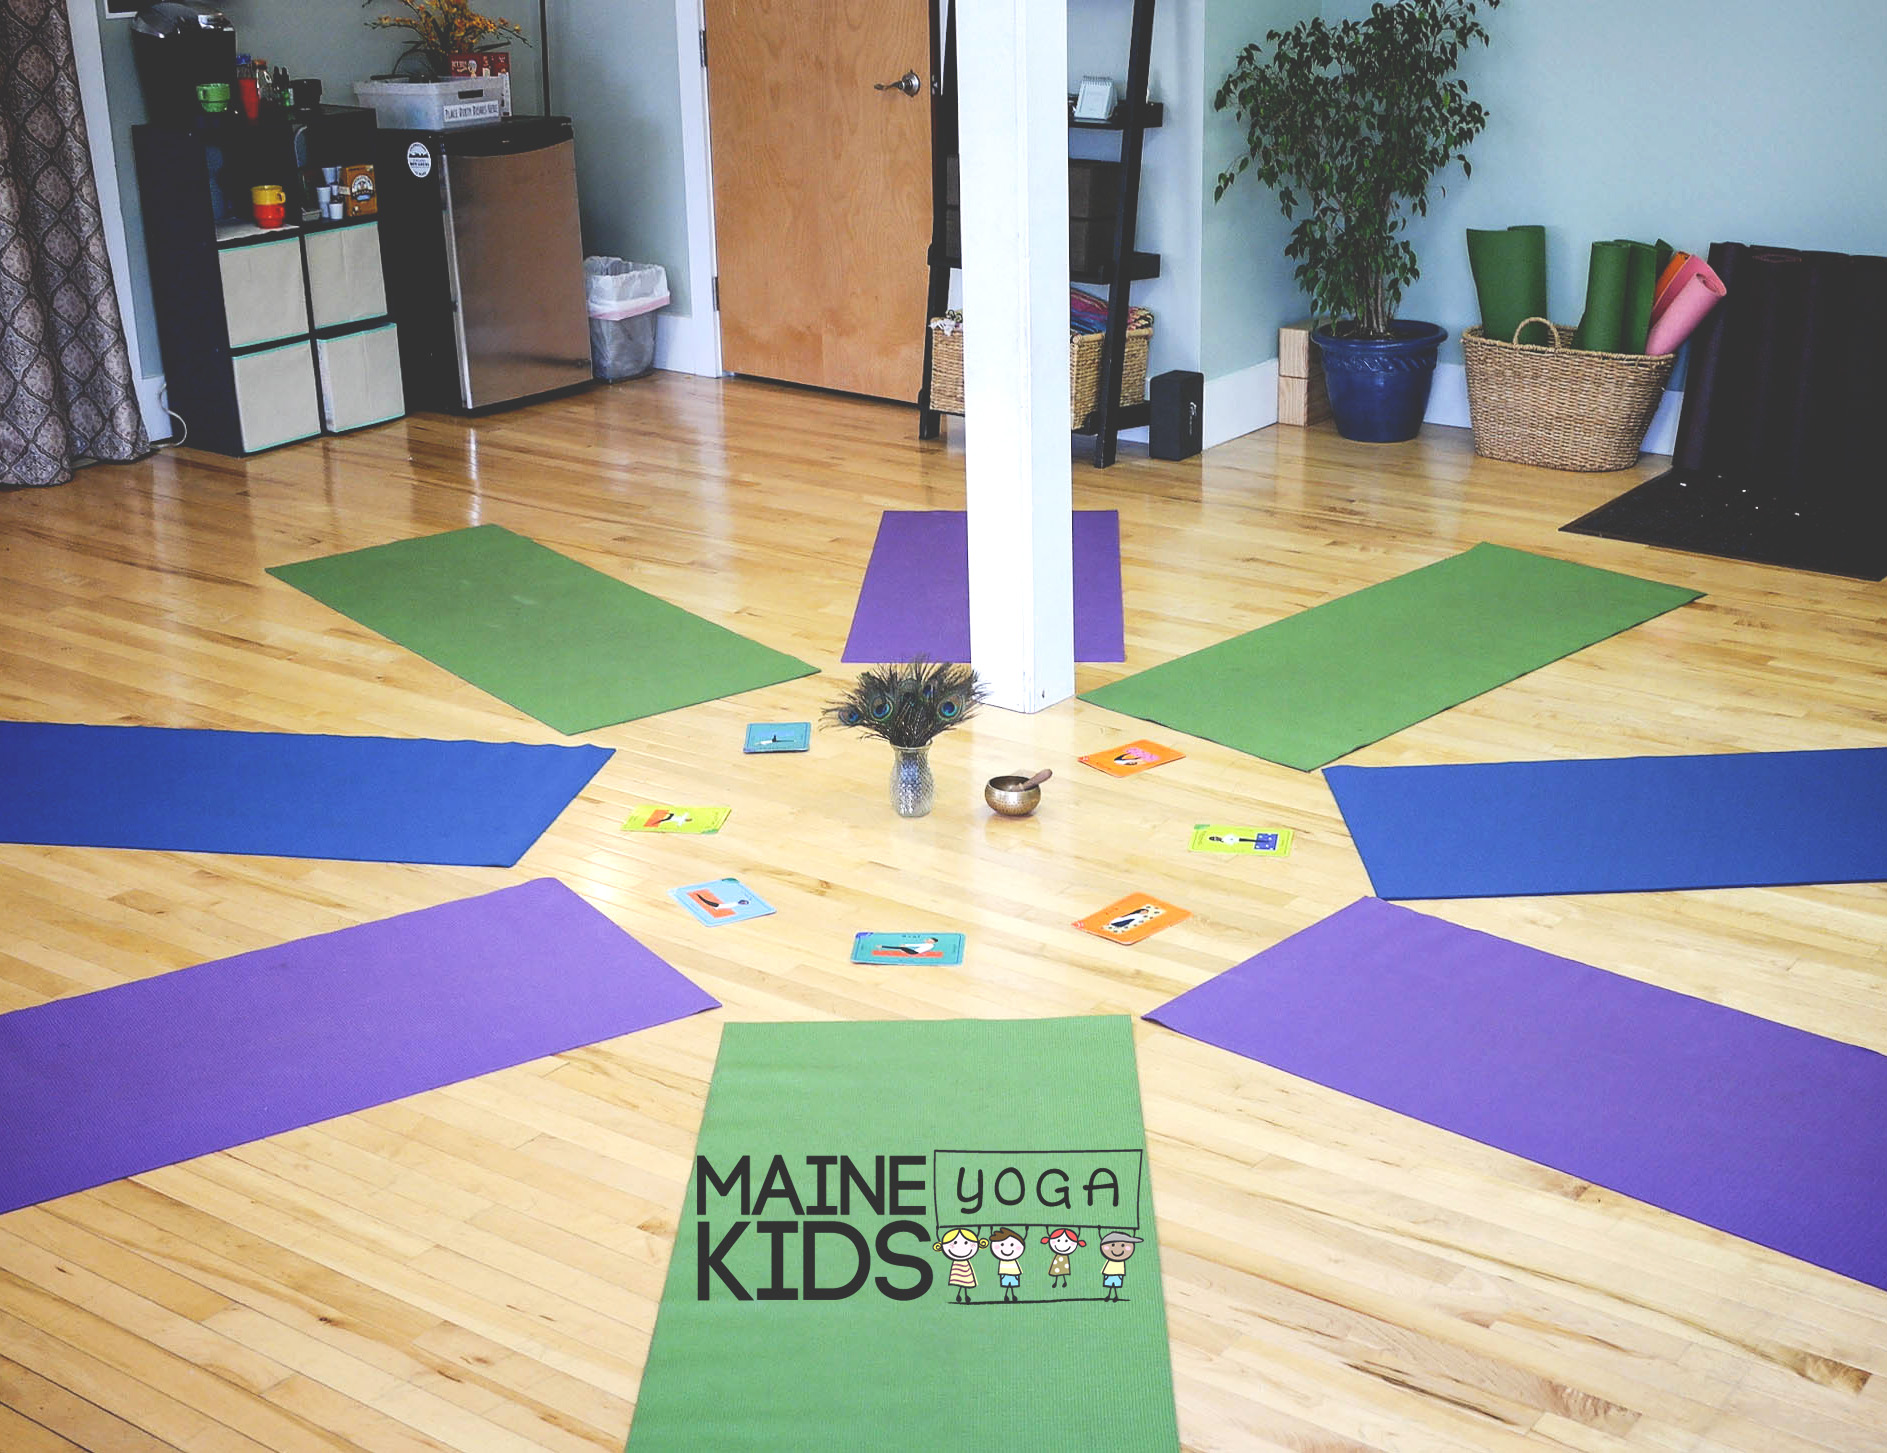 other offerings from Maine Kids Yoga - In addition to our studio classes, we also offer yoga in the community and in local schools, host yoga birthday parties, teach ZenPlay Wednesdays with the West End Village School, offer private yoga sessions, and teach workshops.